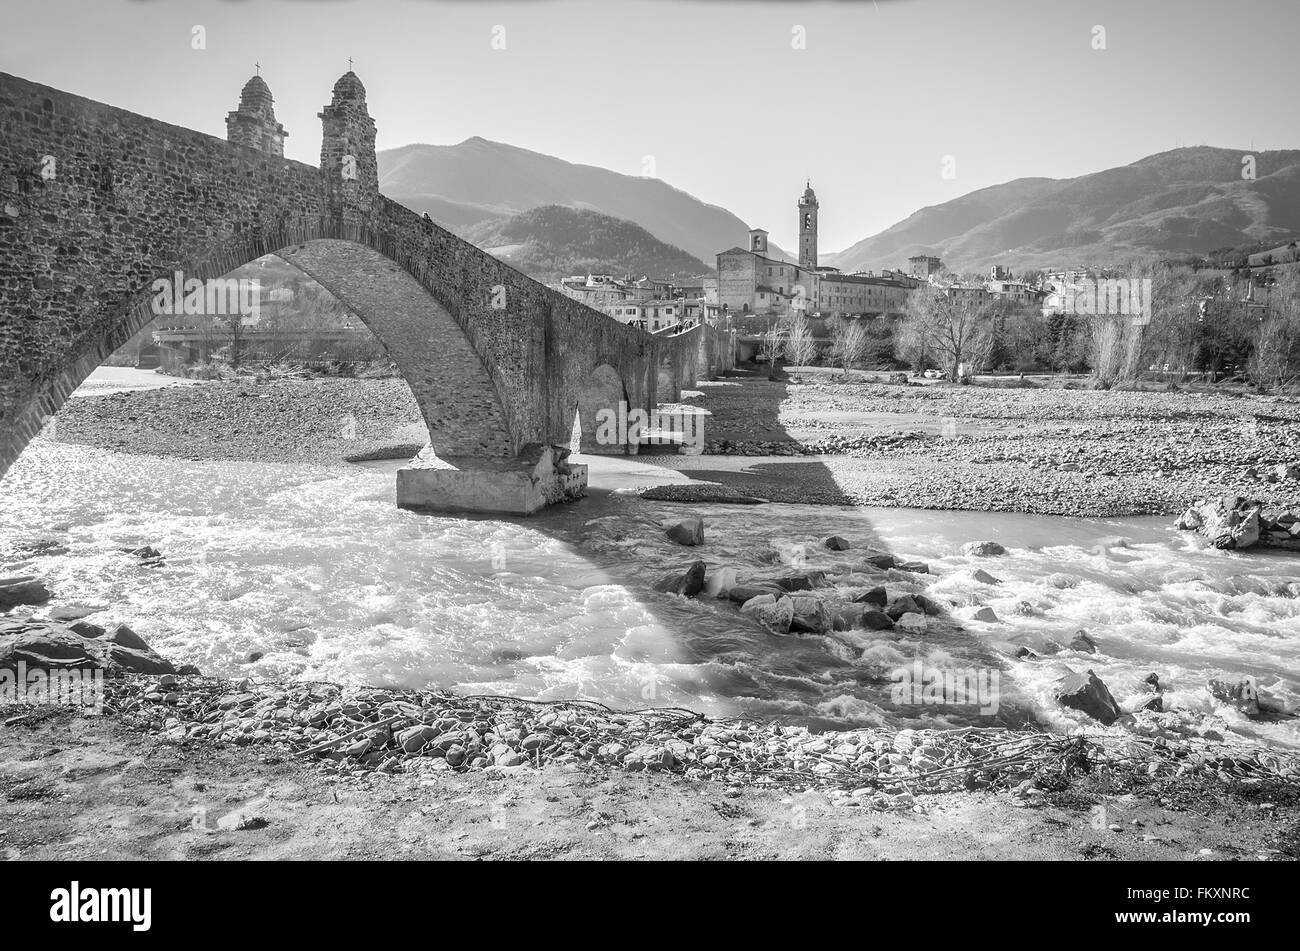 bobbio black and white - Stock Image